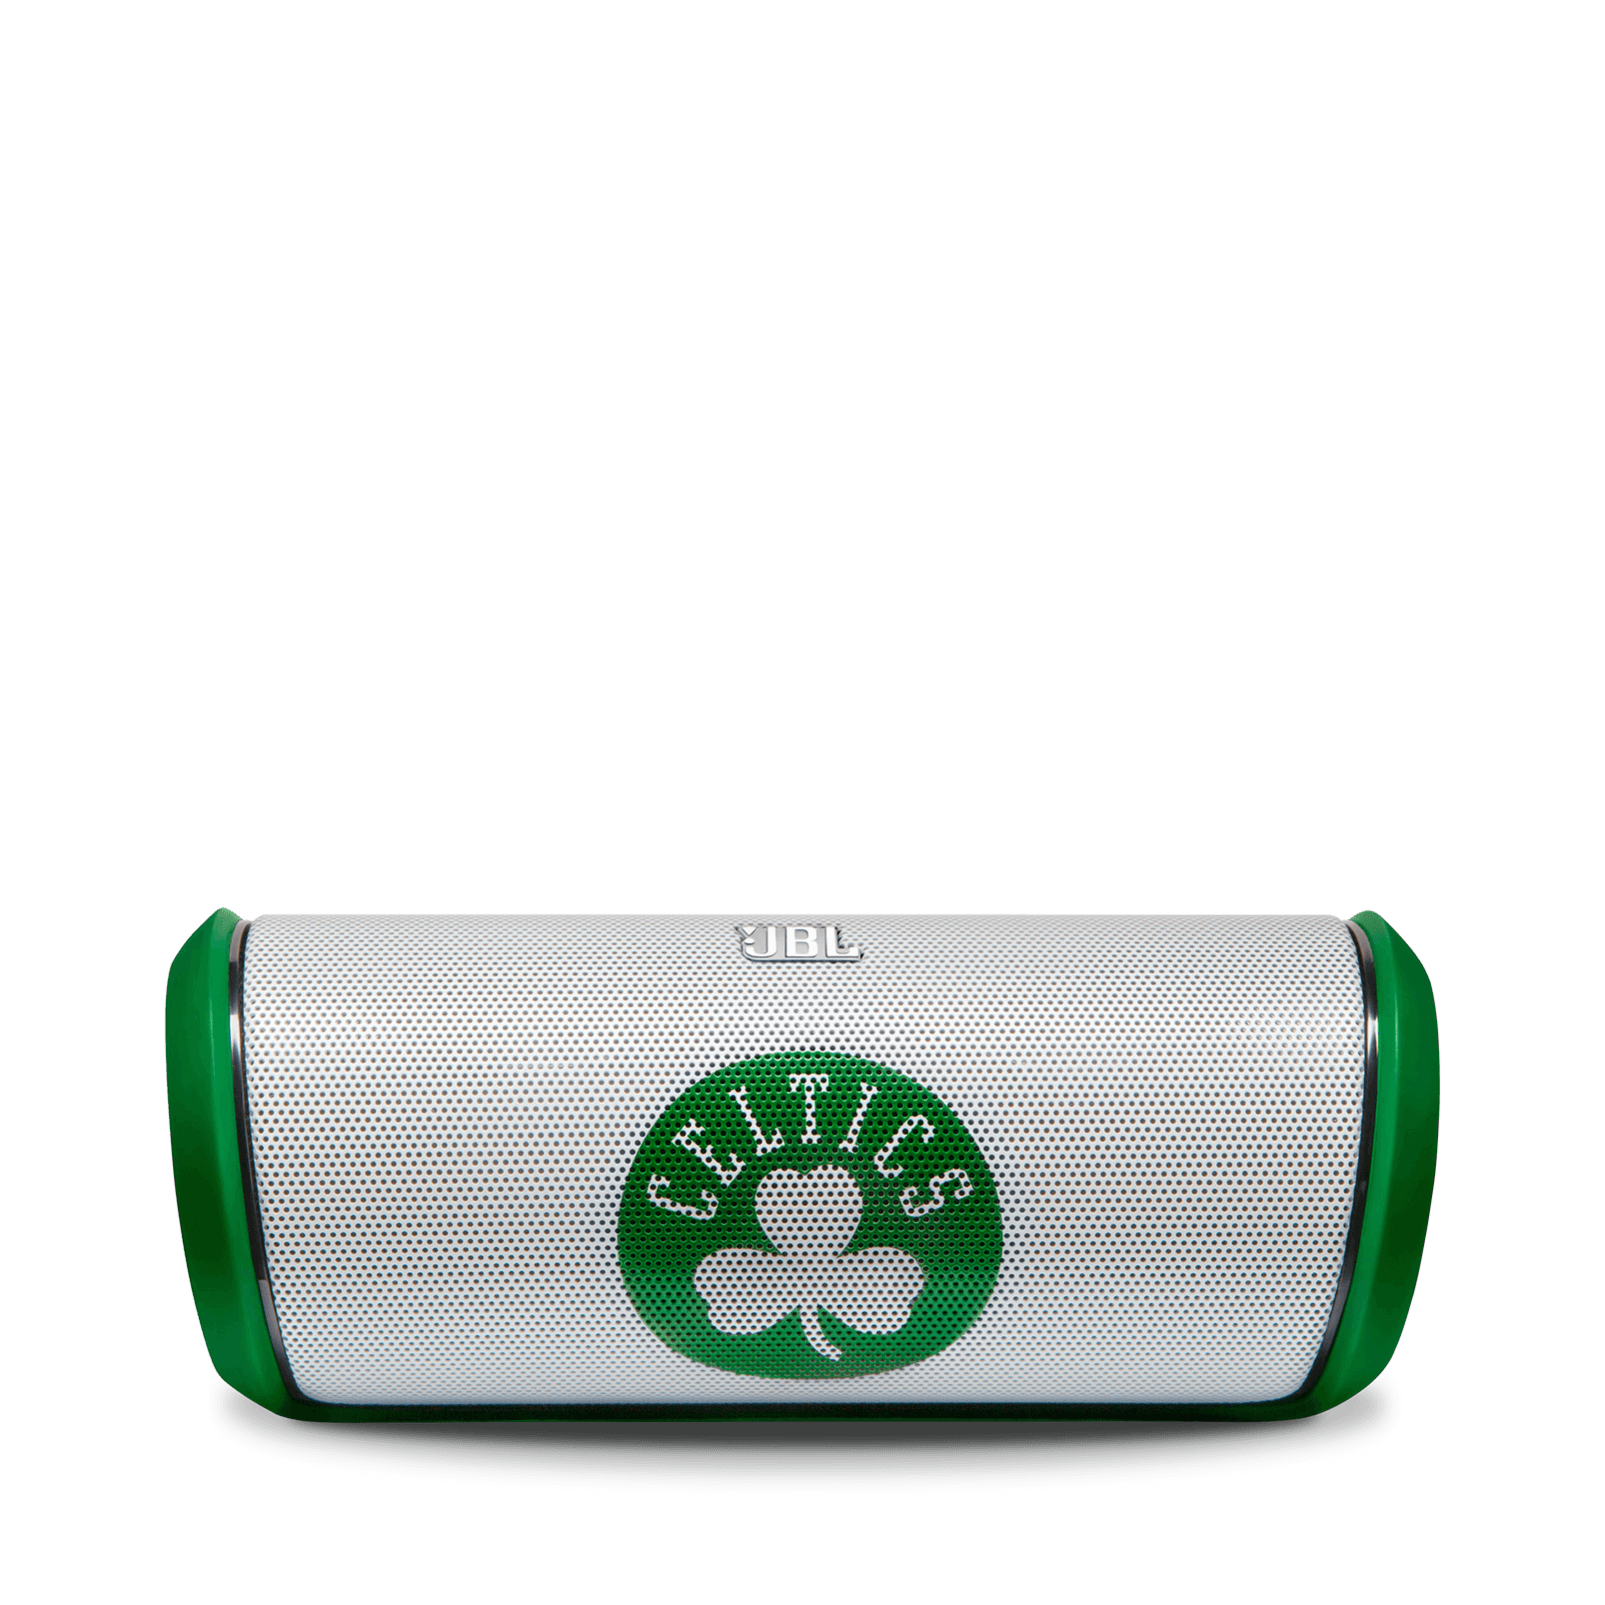 jbl bluetooth speakers - Boston celtics 10